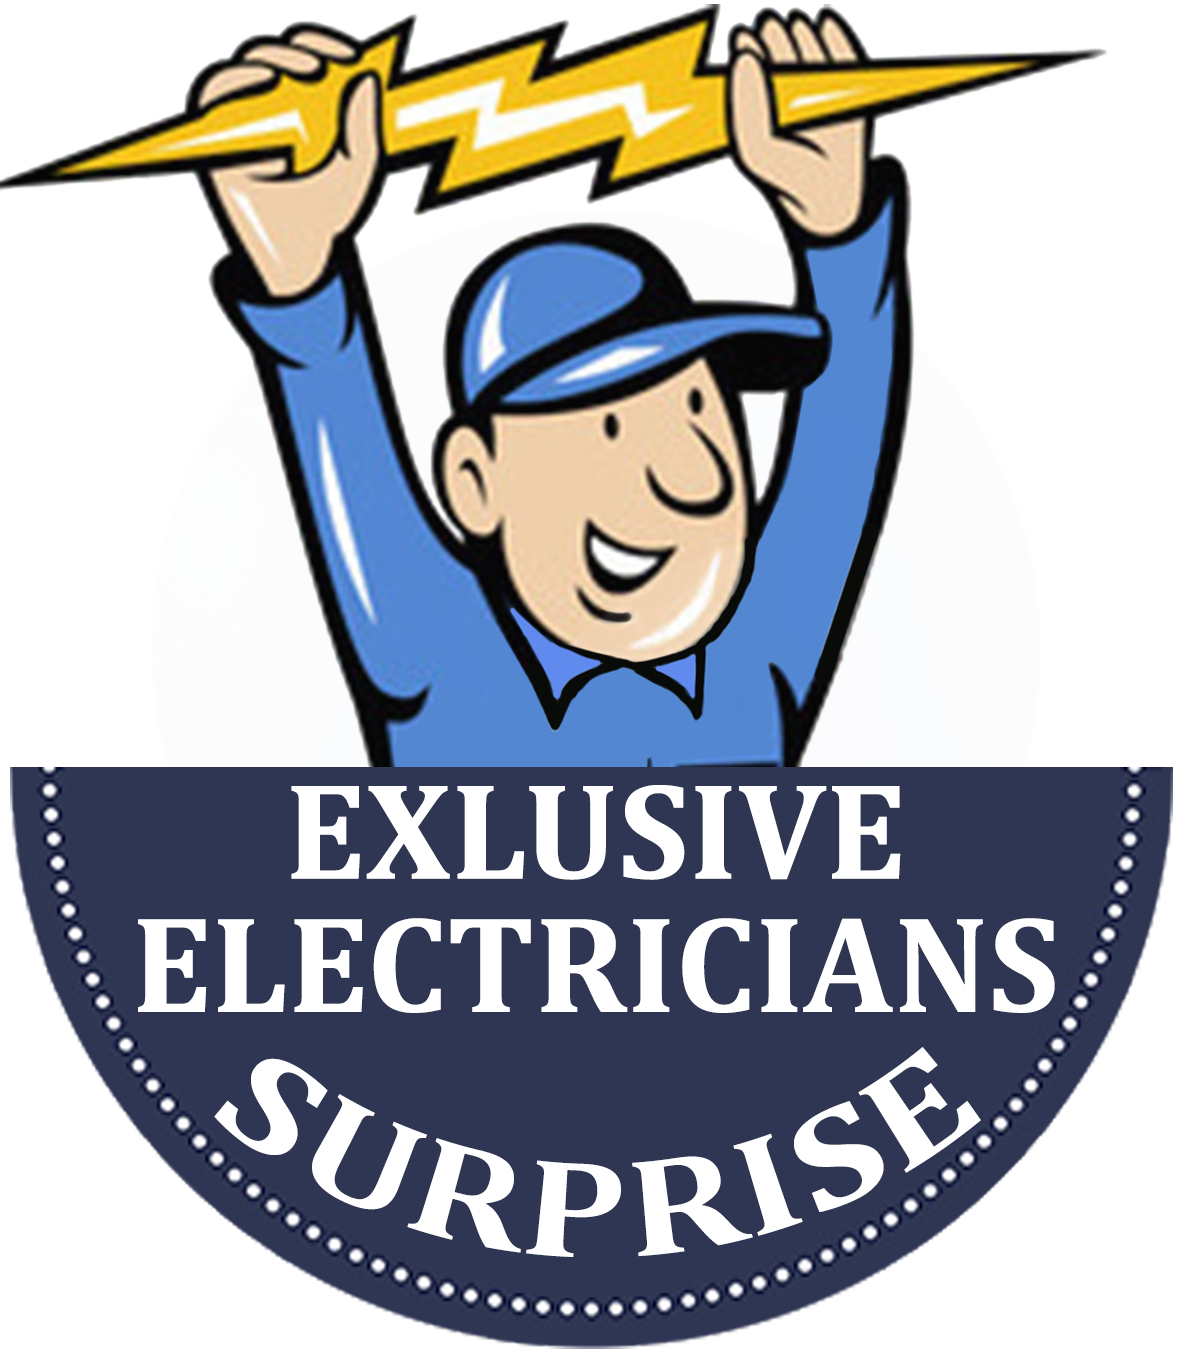 electricity clipart unsafe